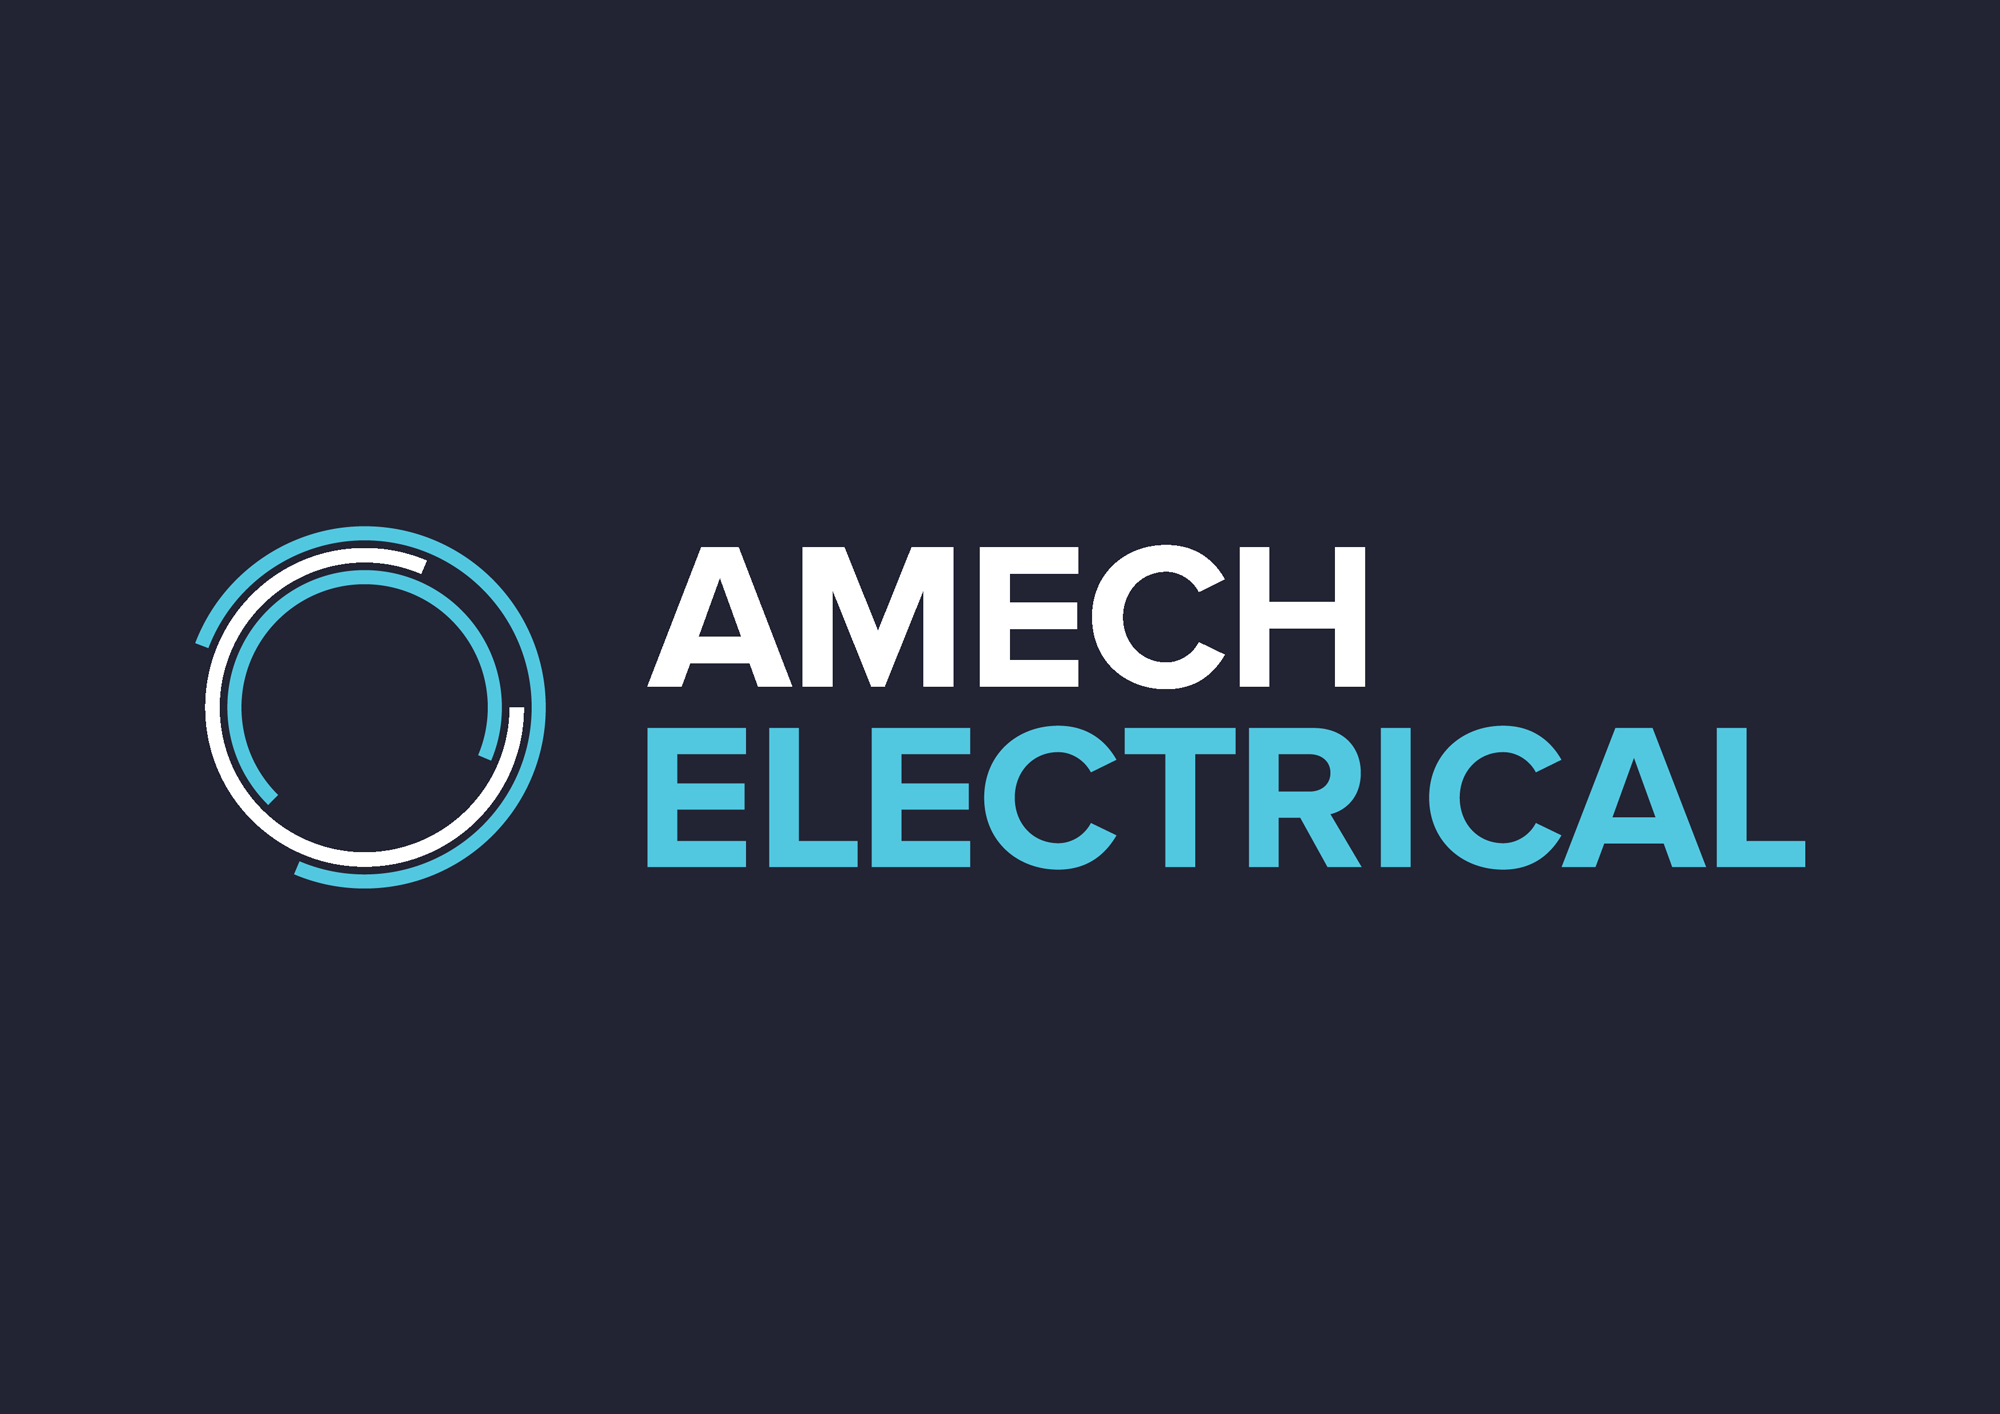 electrical company brand design